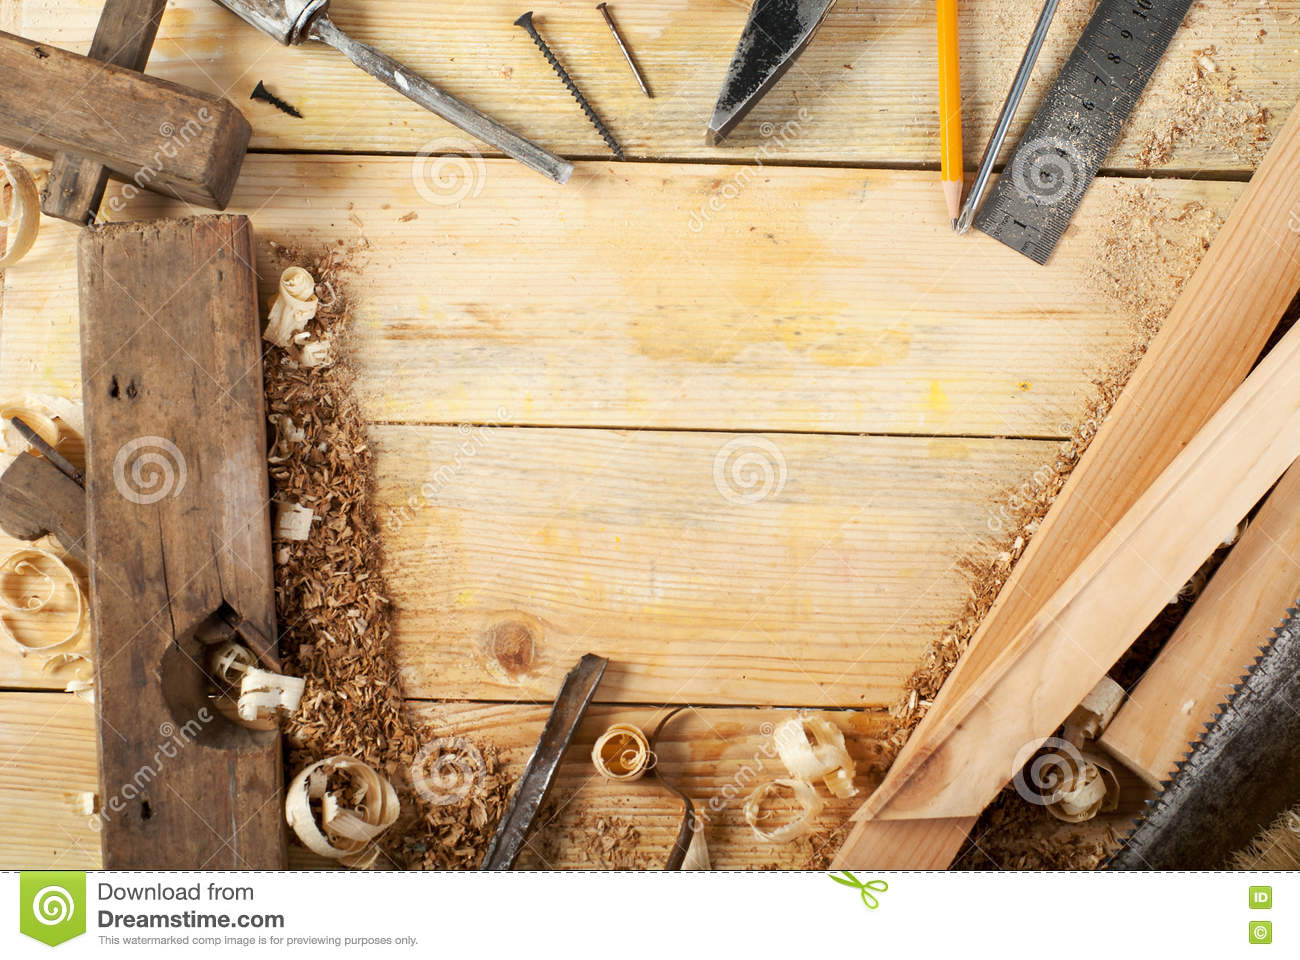 Carpentry background - photo#45